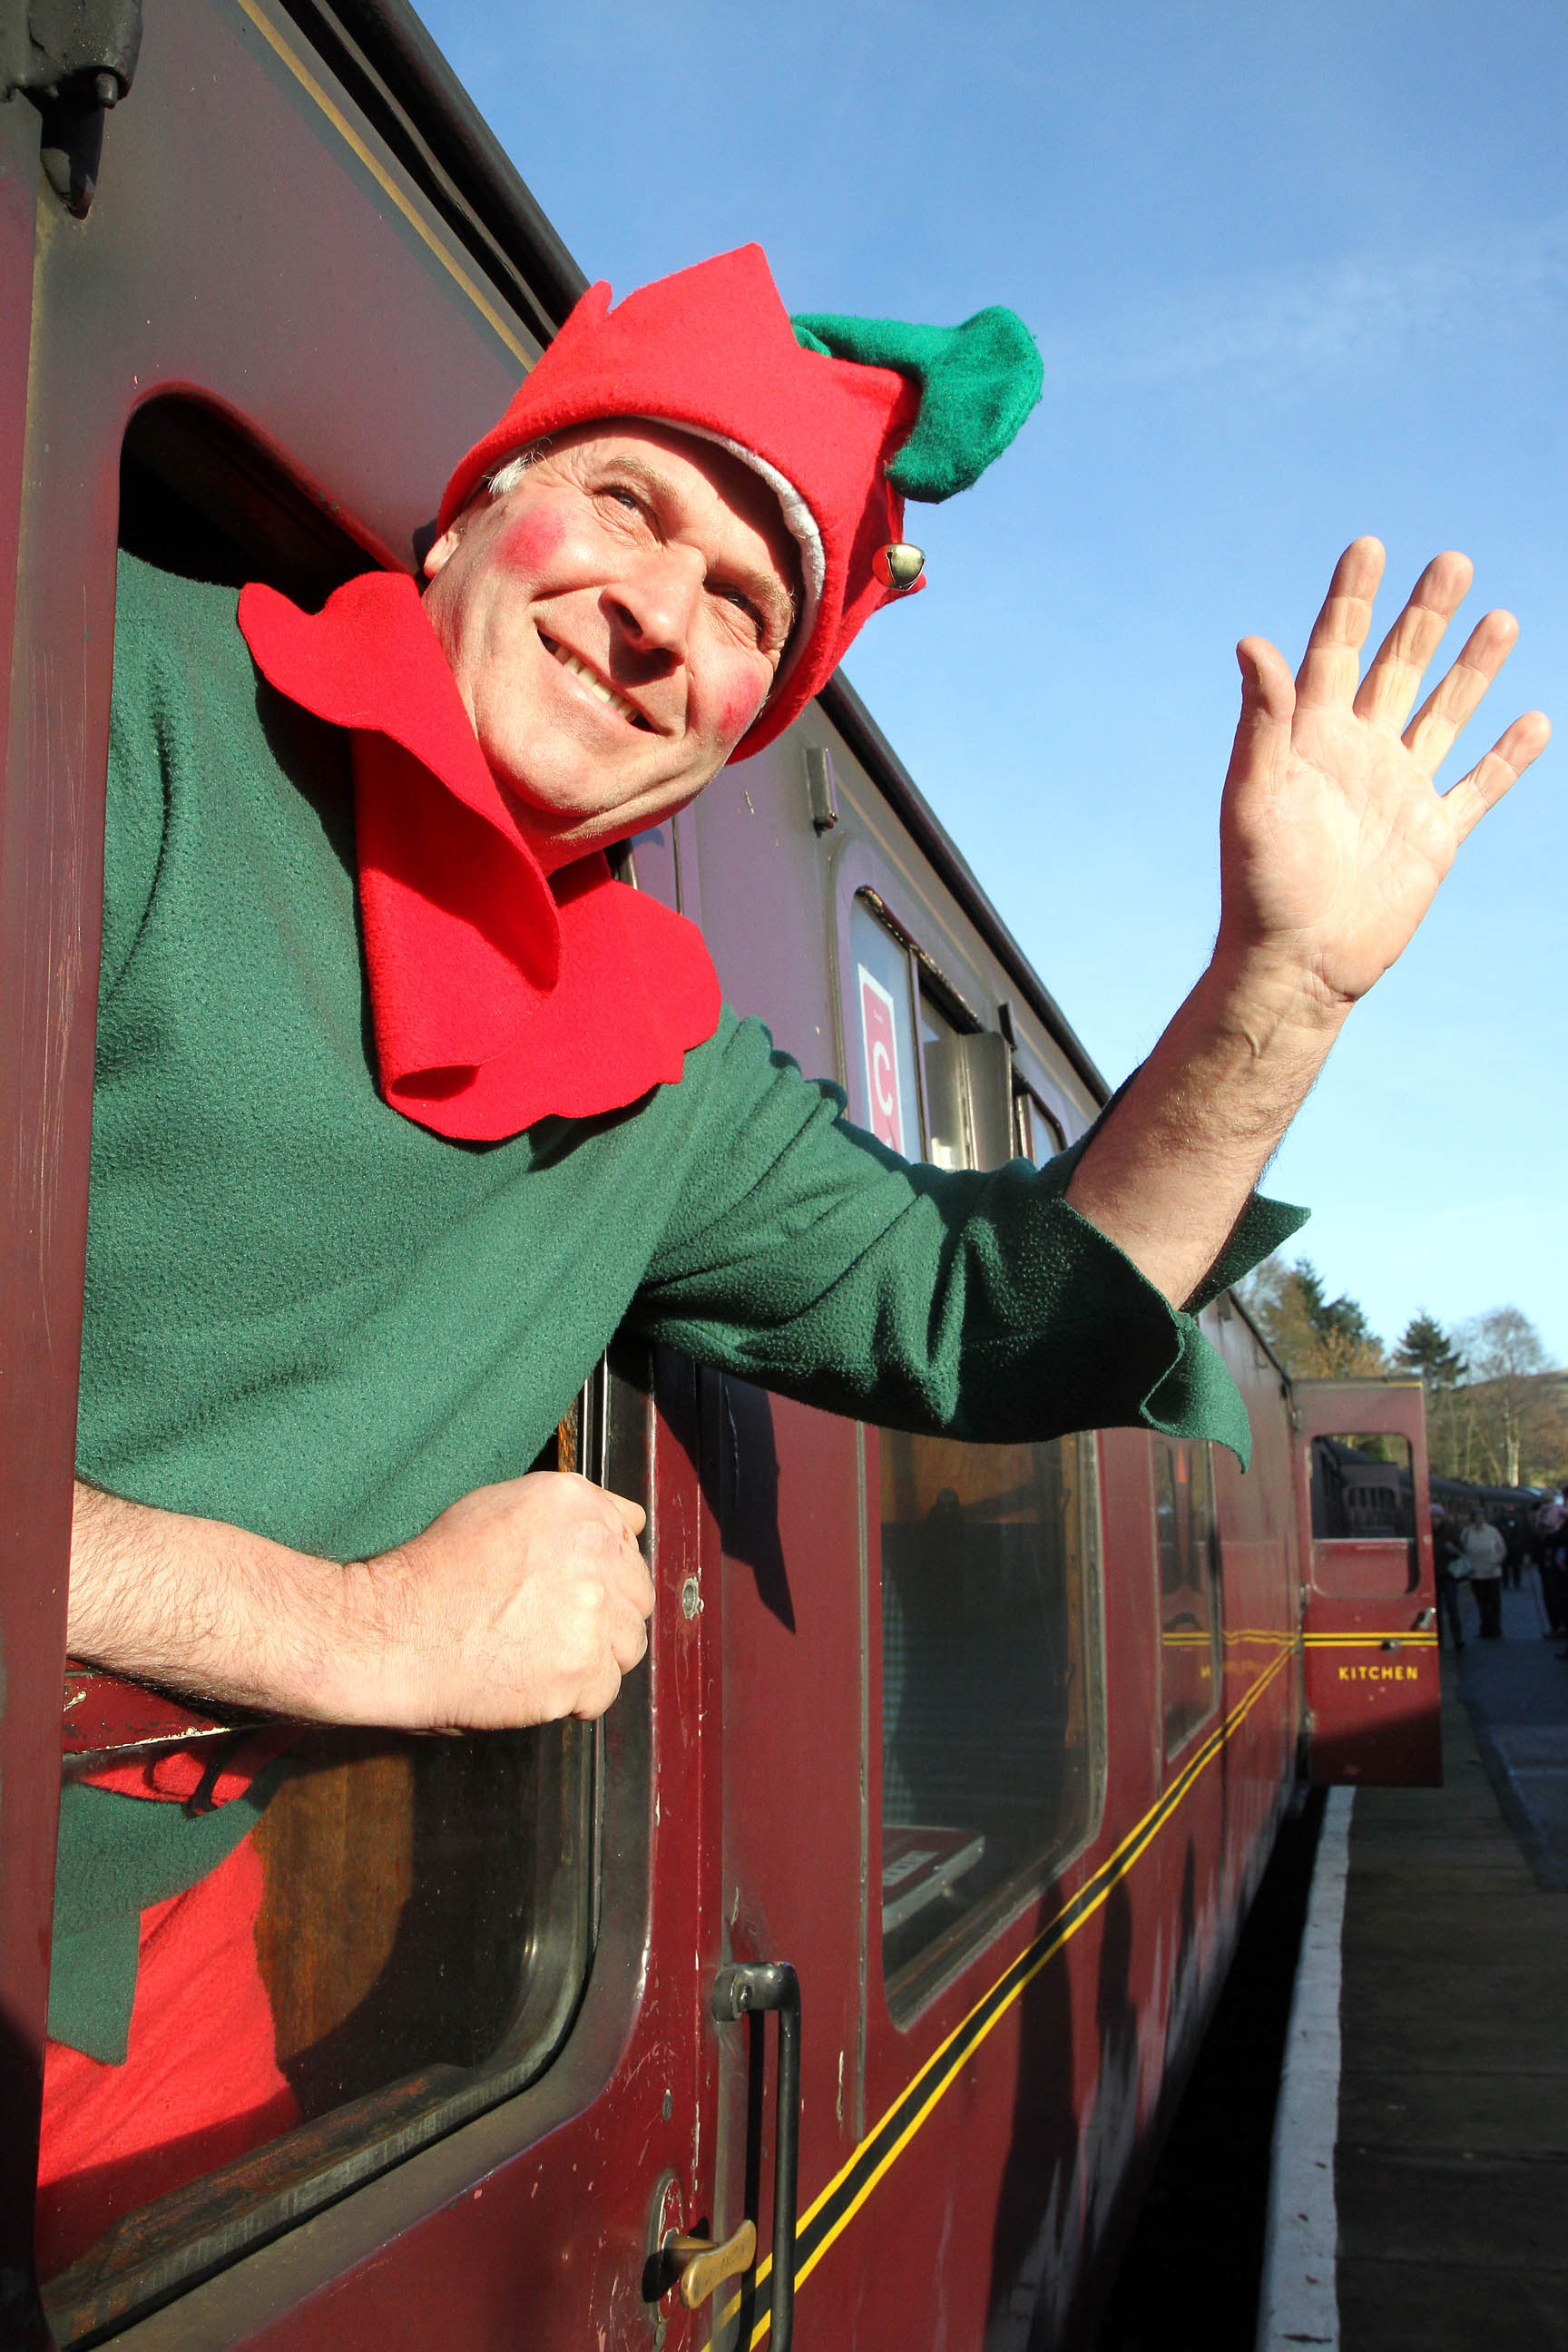 Santa's helper, Richard Lamb, waves to the crowds of visitors at Oxenhope Station for the Santa Special service